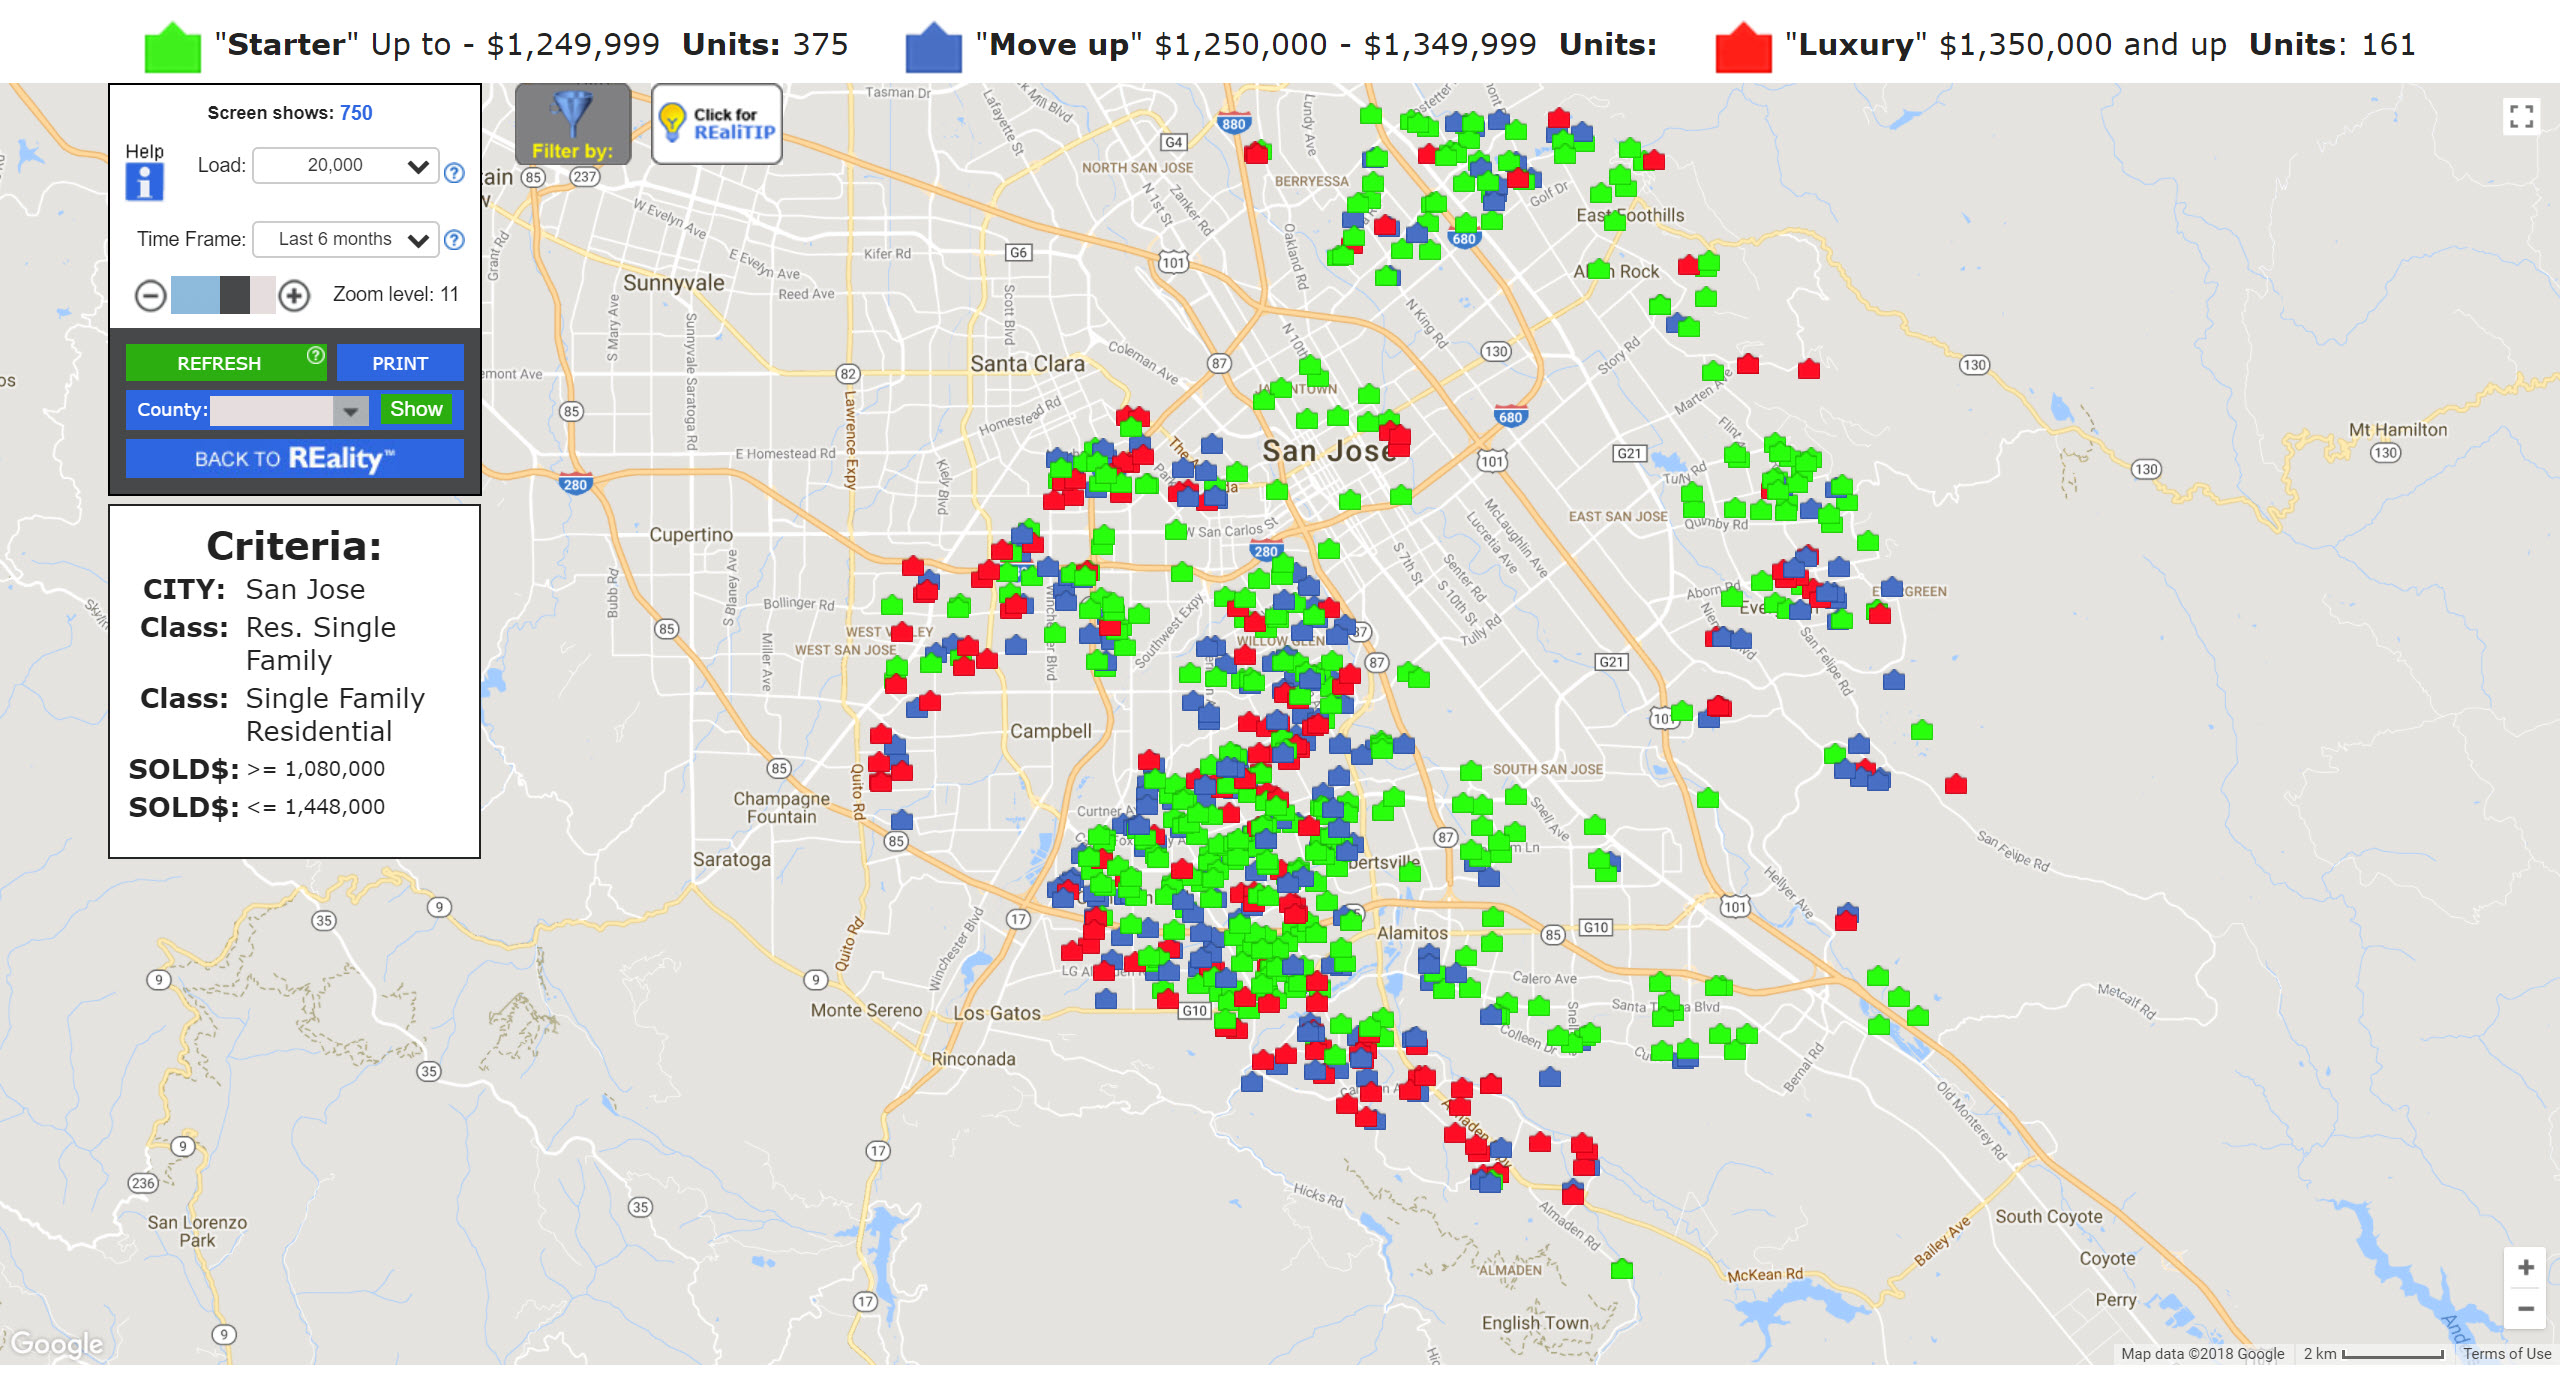 SAN JOSE REAL ESTATE MARKET UPDATE MOVE UP HOME SALES MAP JANUARY 2018